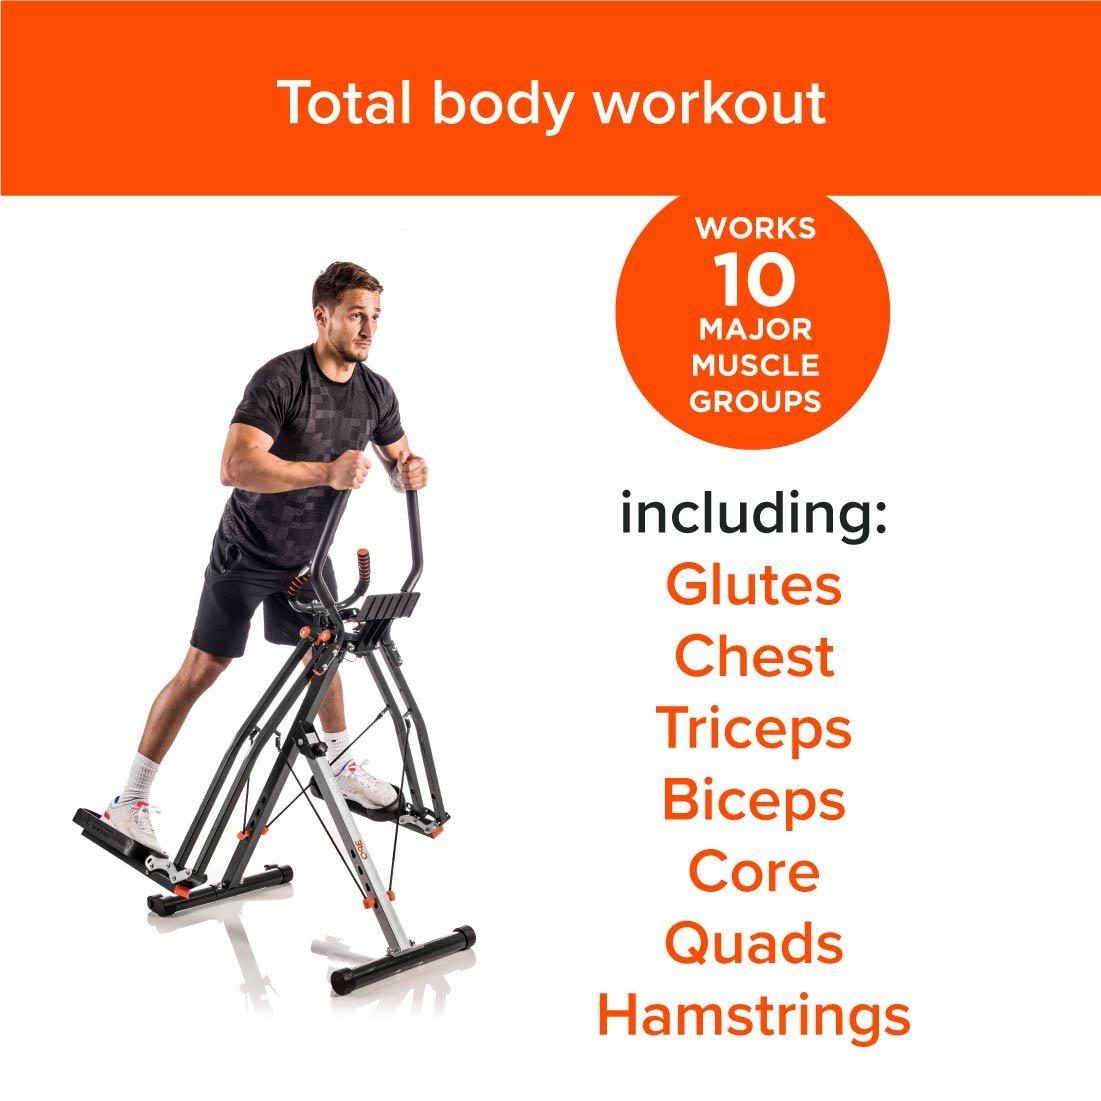 maxi-glider 360 por nueva imagen 10-in-1 casa ejercicio Fitness Trainer + Heart Rate Monitor & Soporte para tablet (as seen on TV de alta calle): Amazon.es: ...